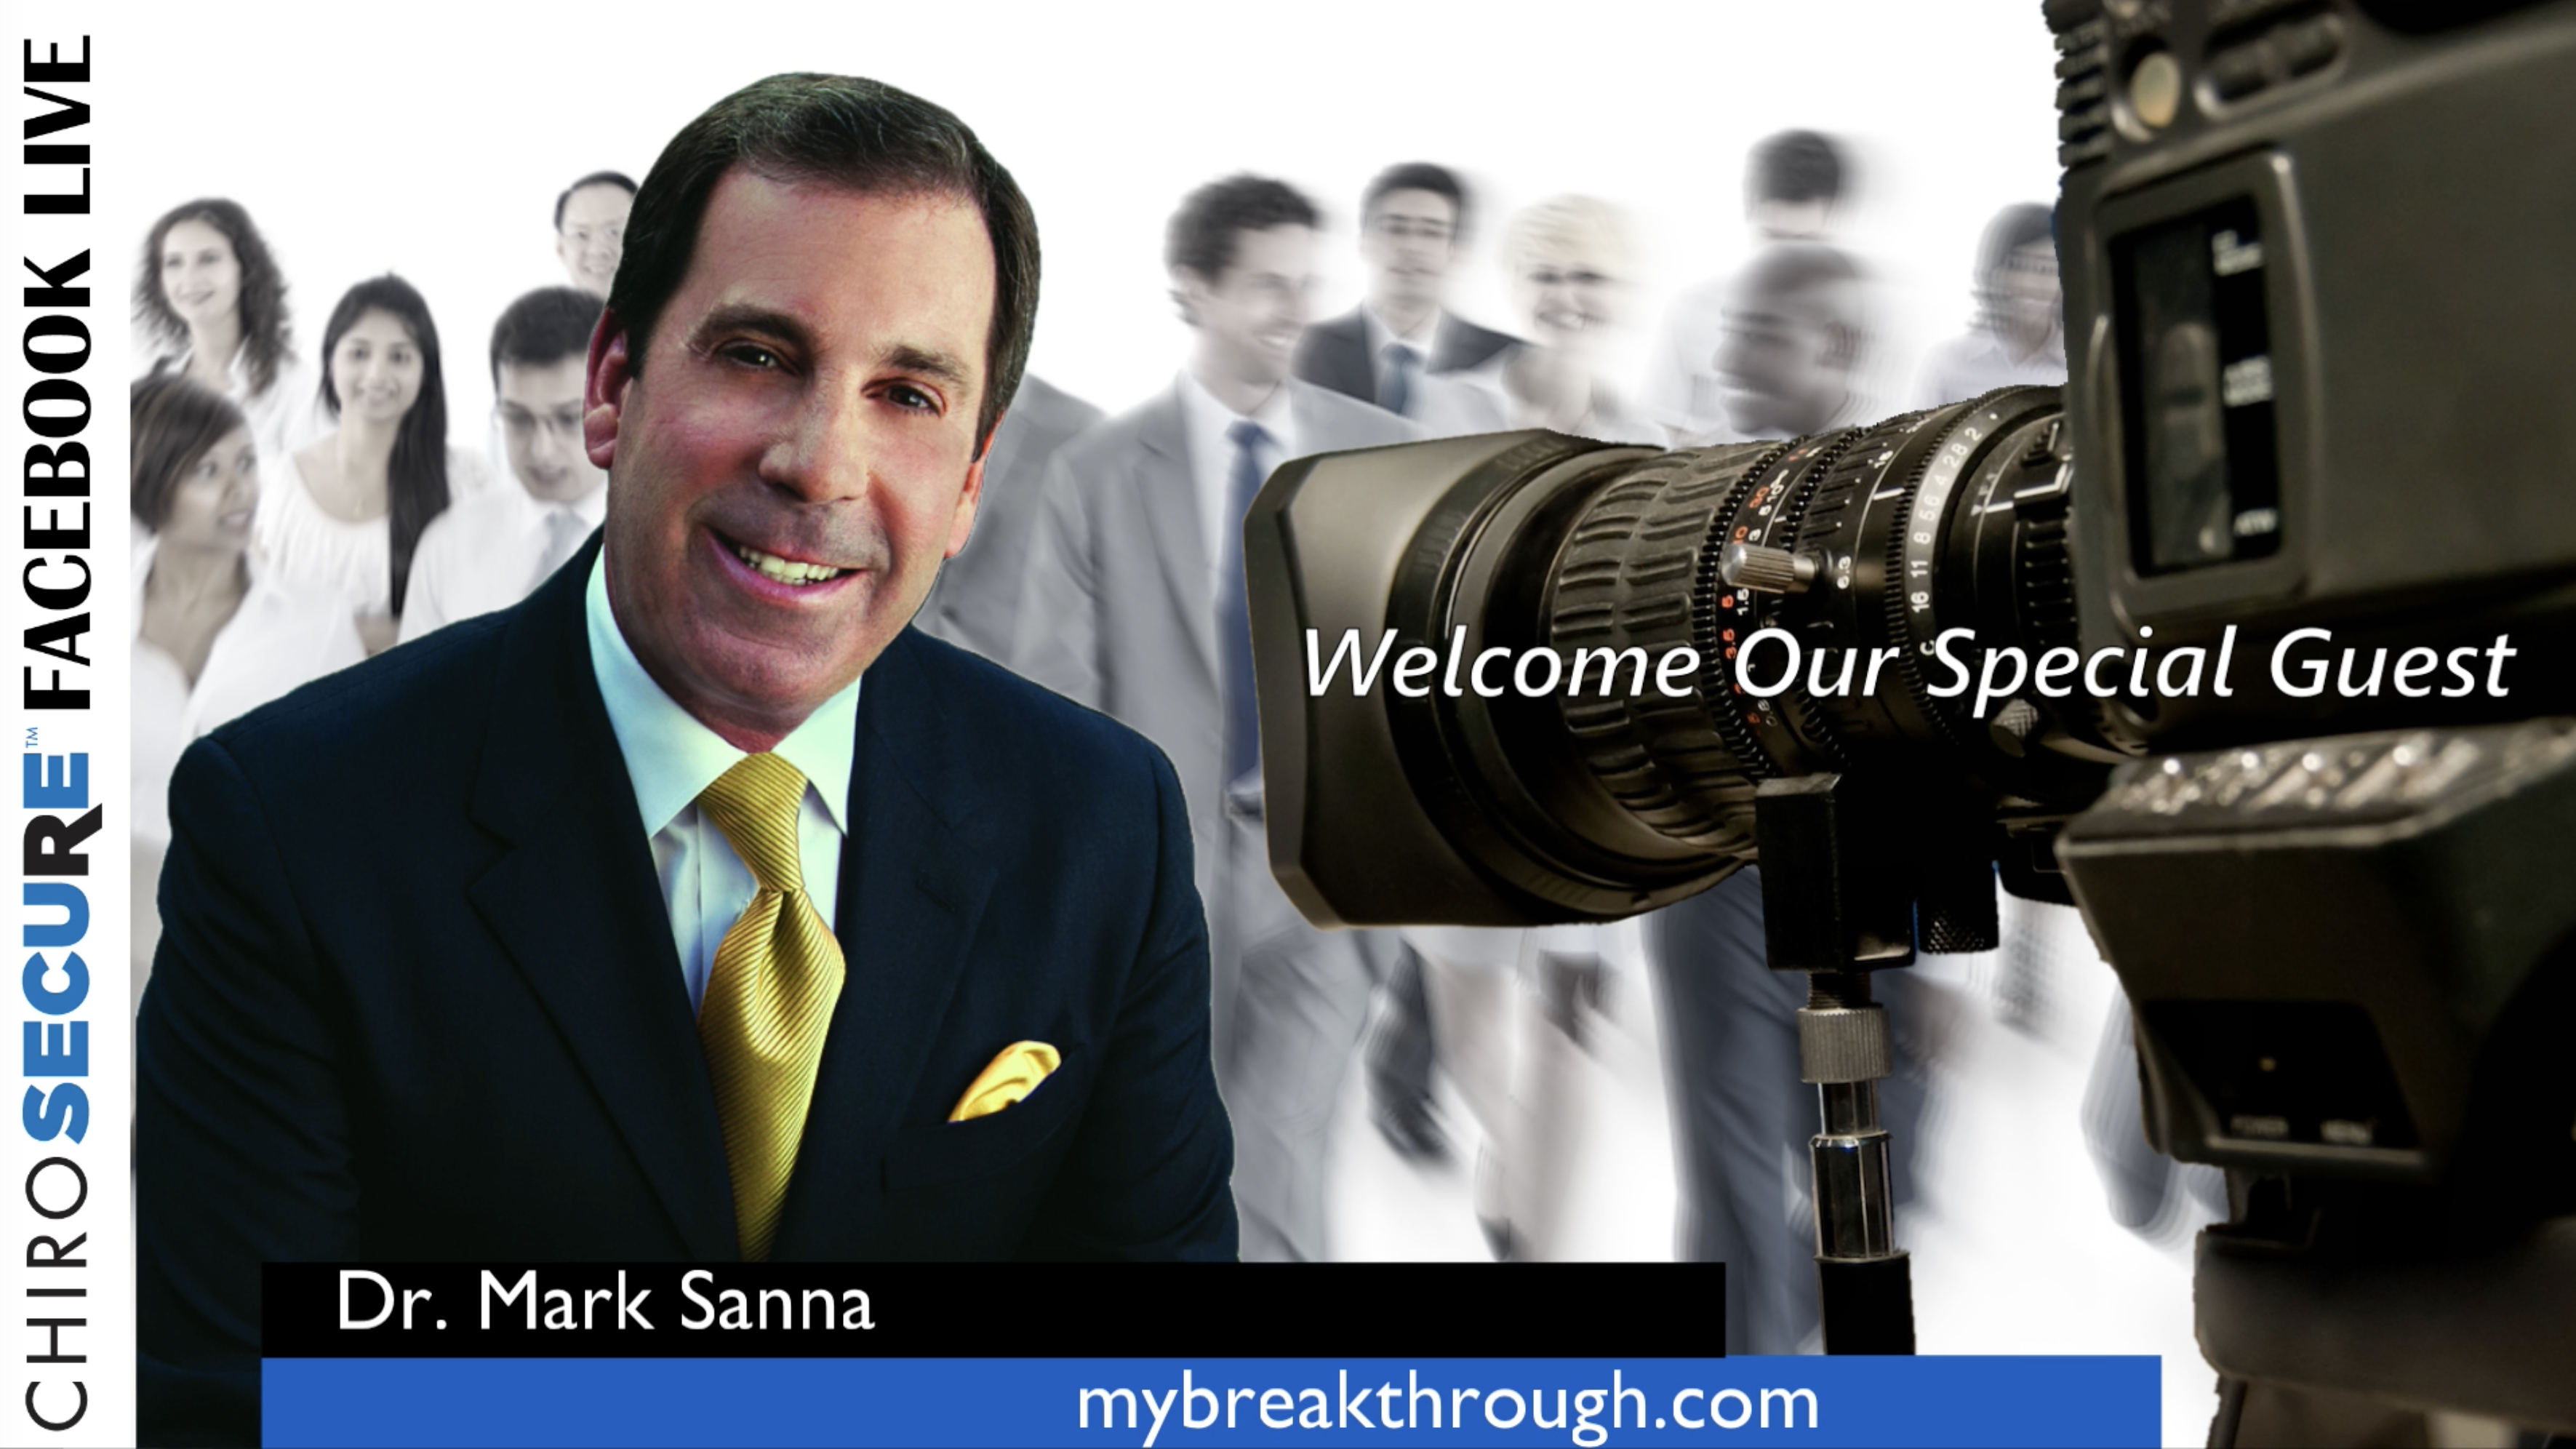 Thumbnail Image of Mark Sanna